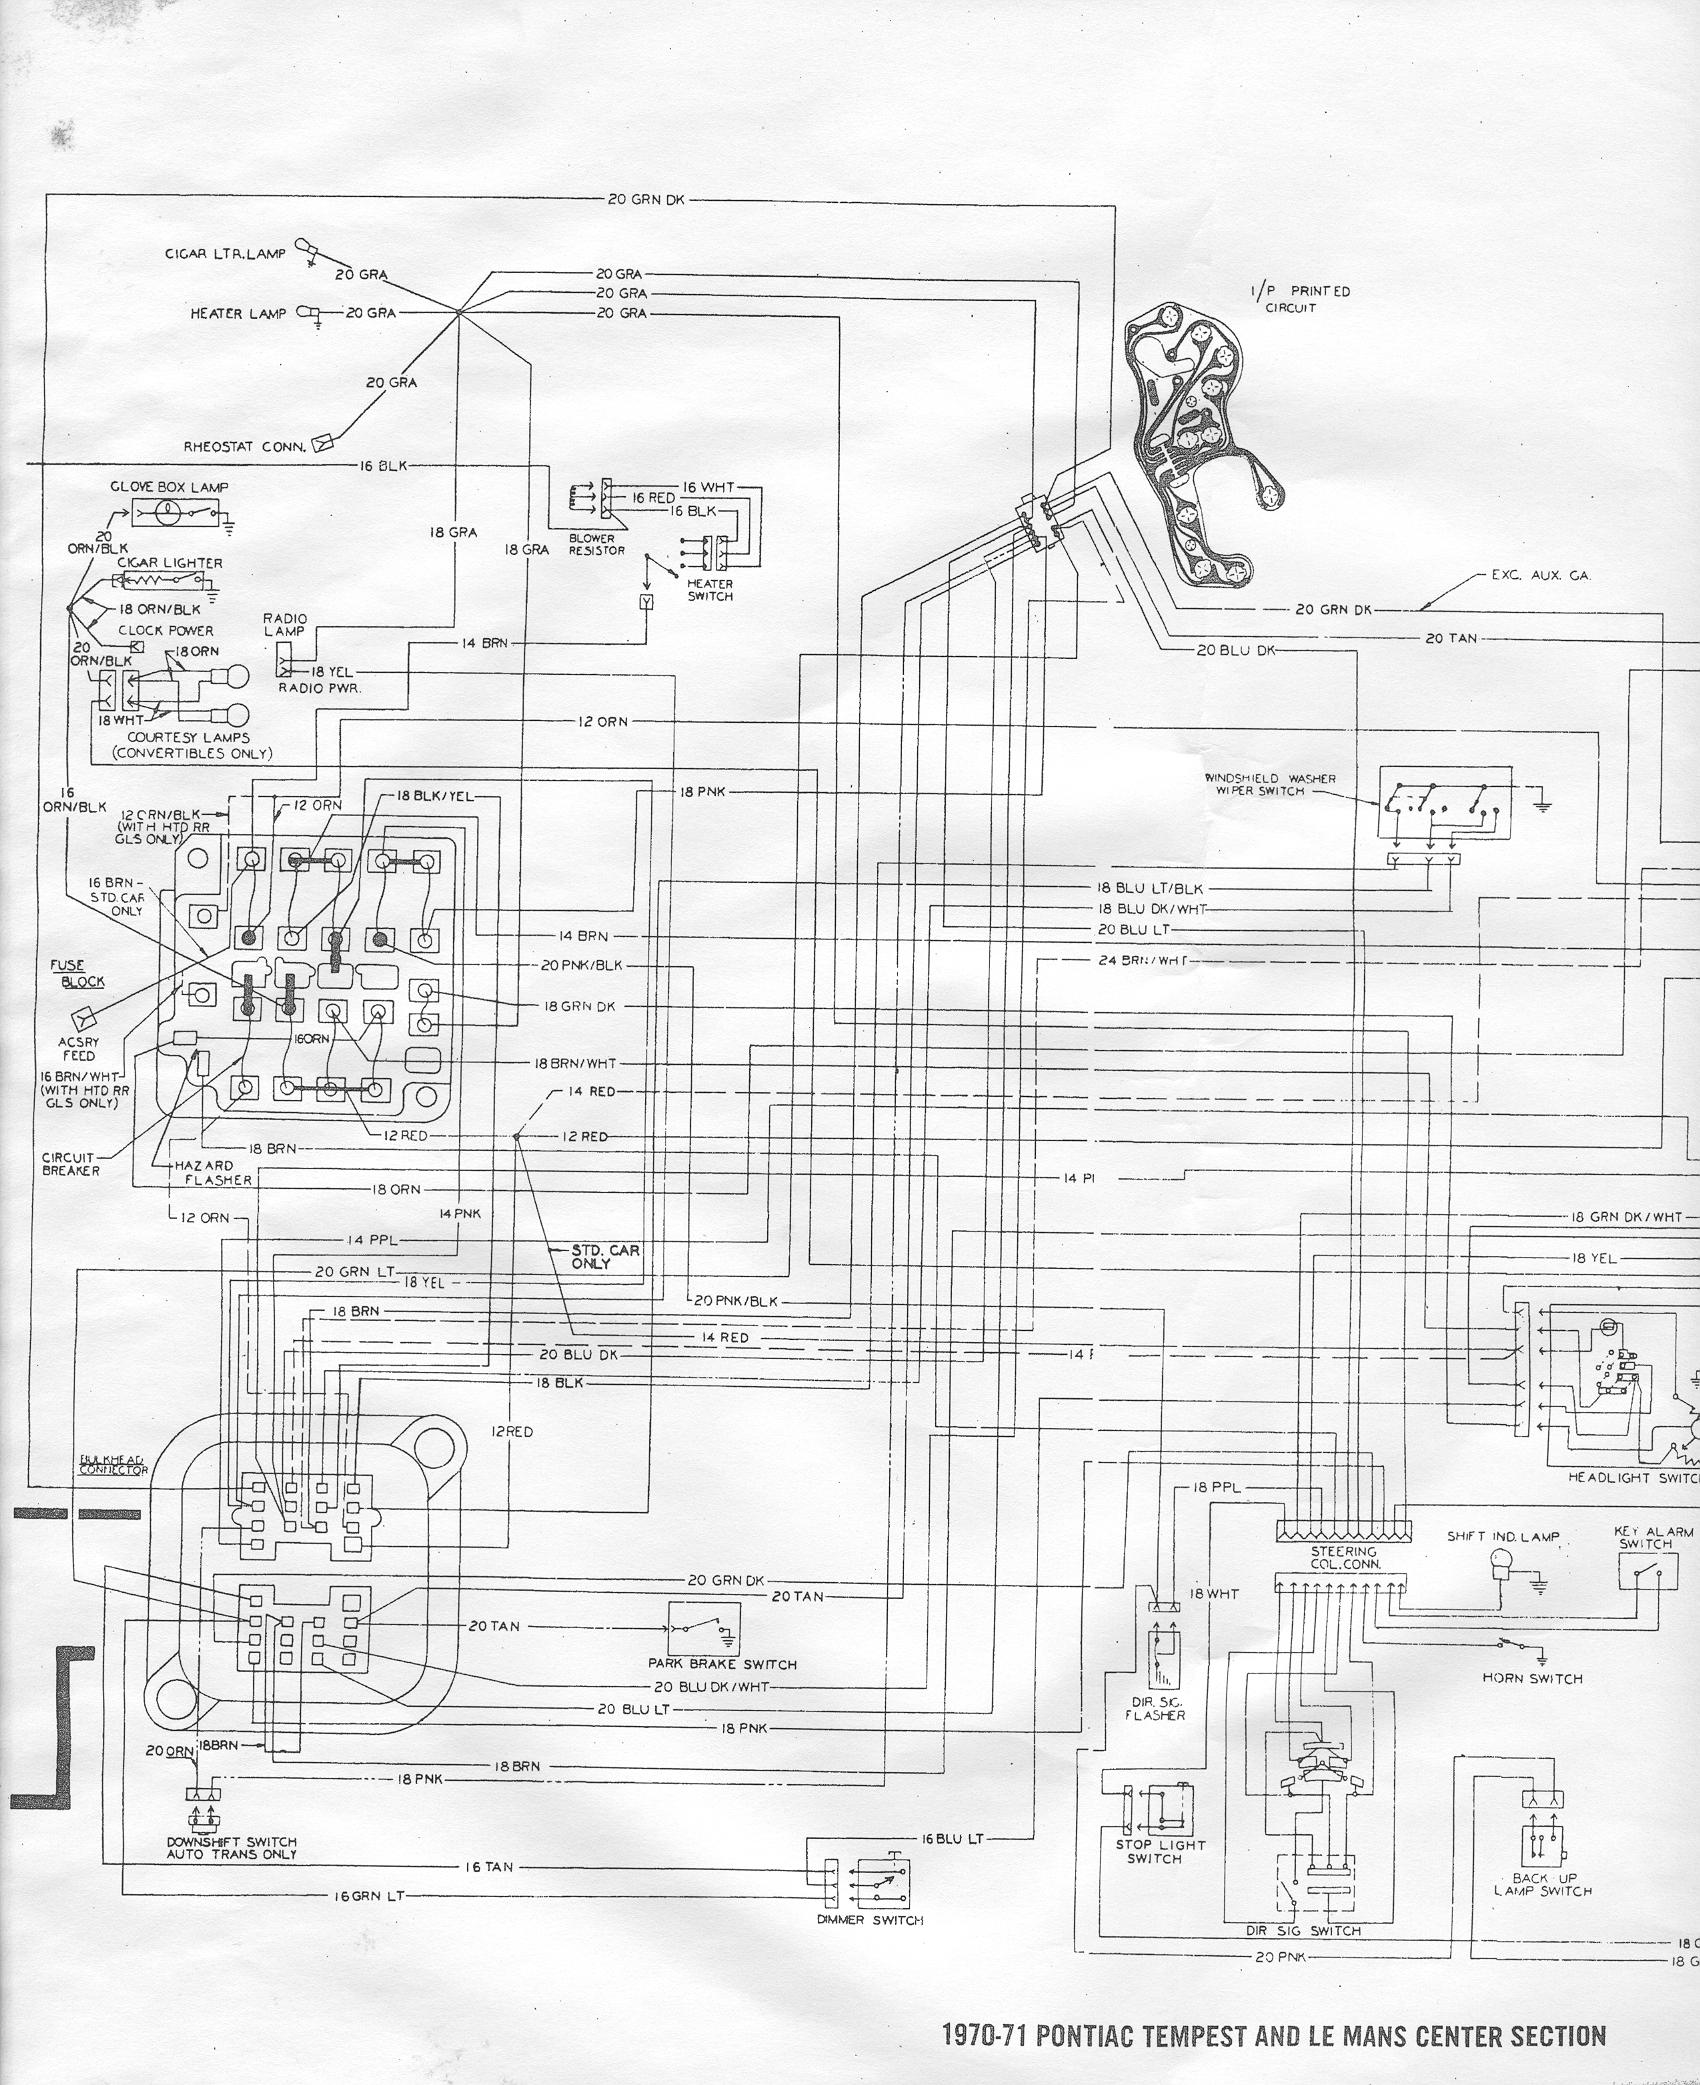 Gto Wiring Diagram Scans Pontiac Forum 1974 Mobile Home Electrical Views 26105 Size Click Image For Larger Version Name 70 71 Page3